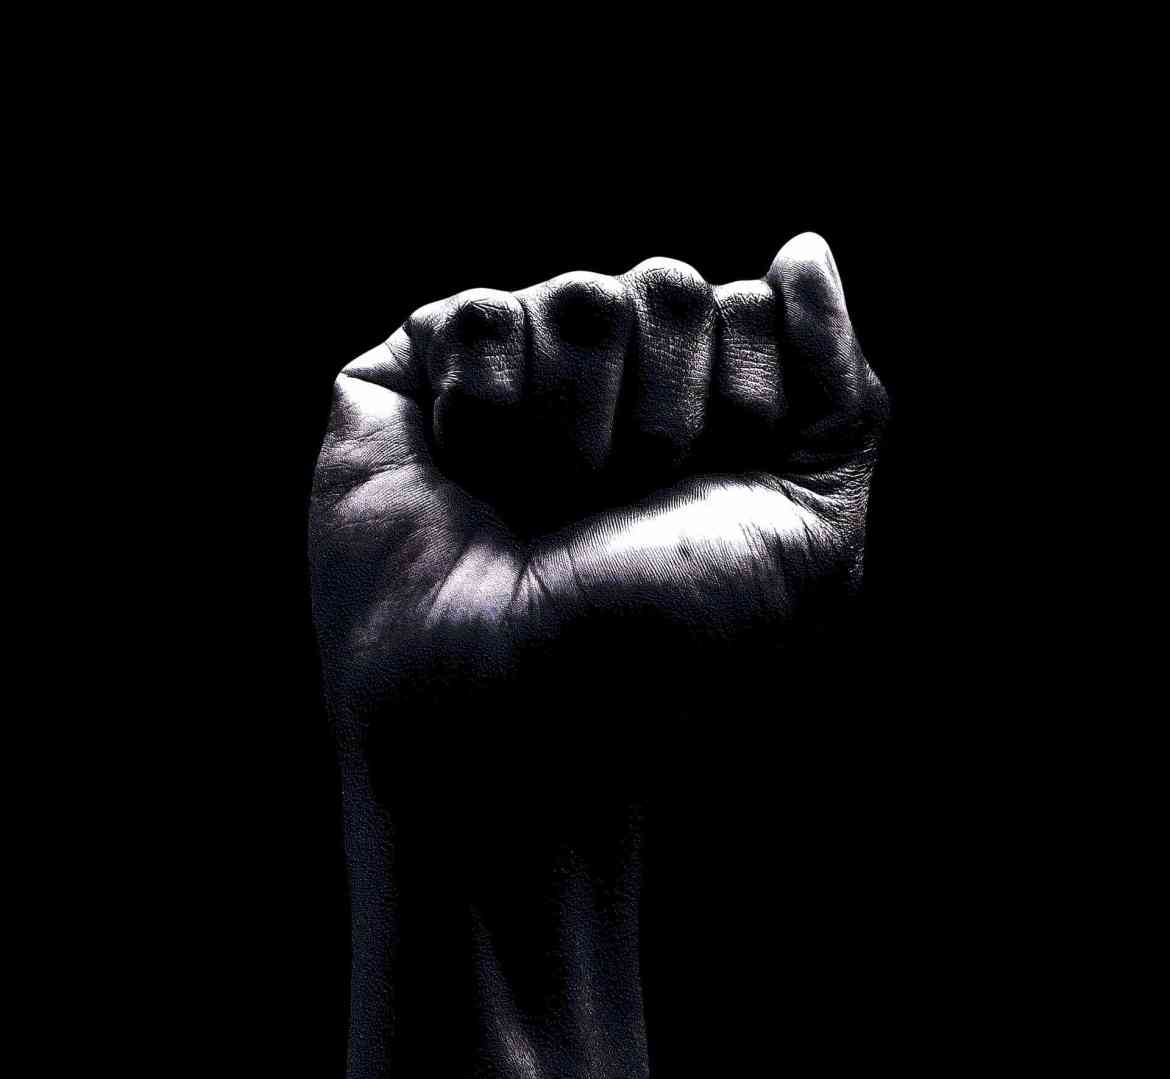 Black man's fist 2 showing respect for the Black Lives Matter movement | Energy of the new moon in Aquarius February 2021 | Conscious Content